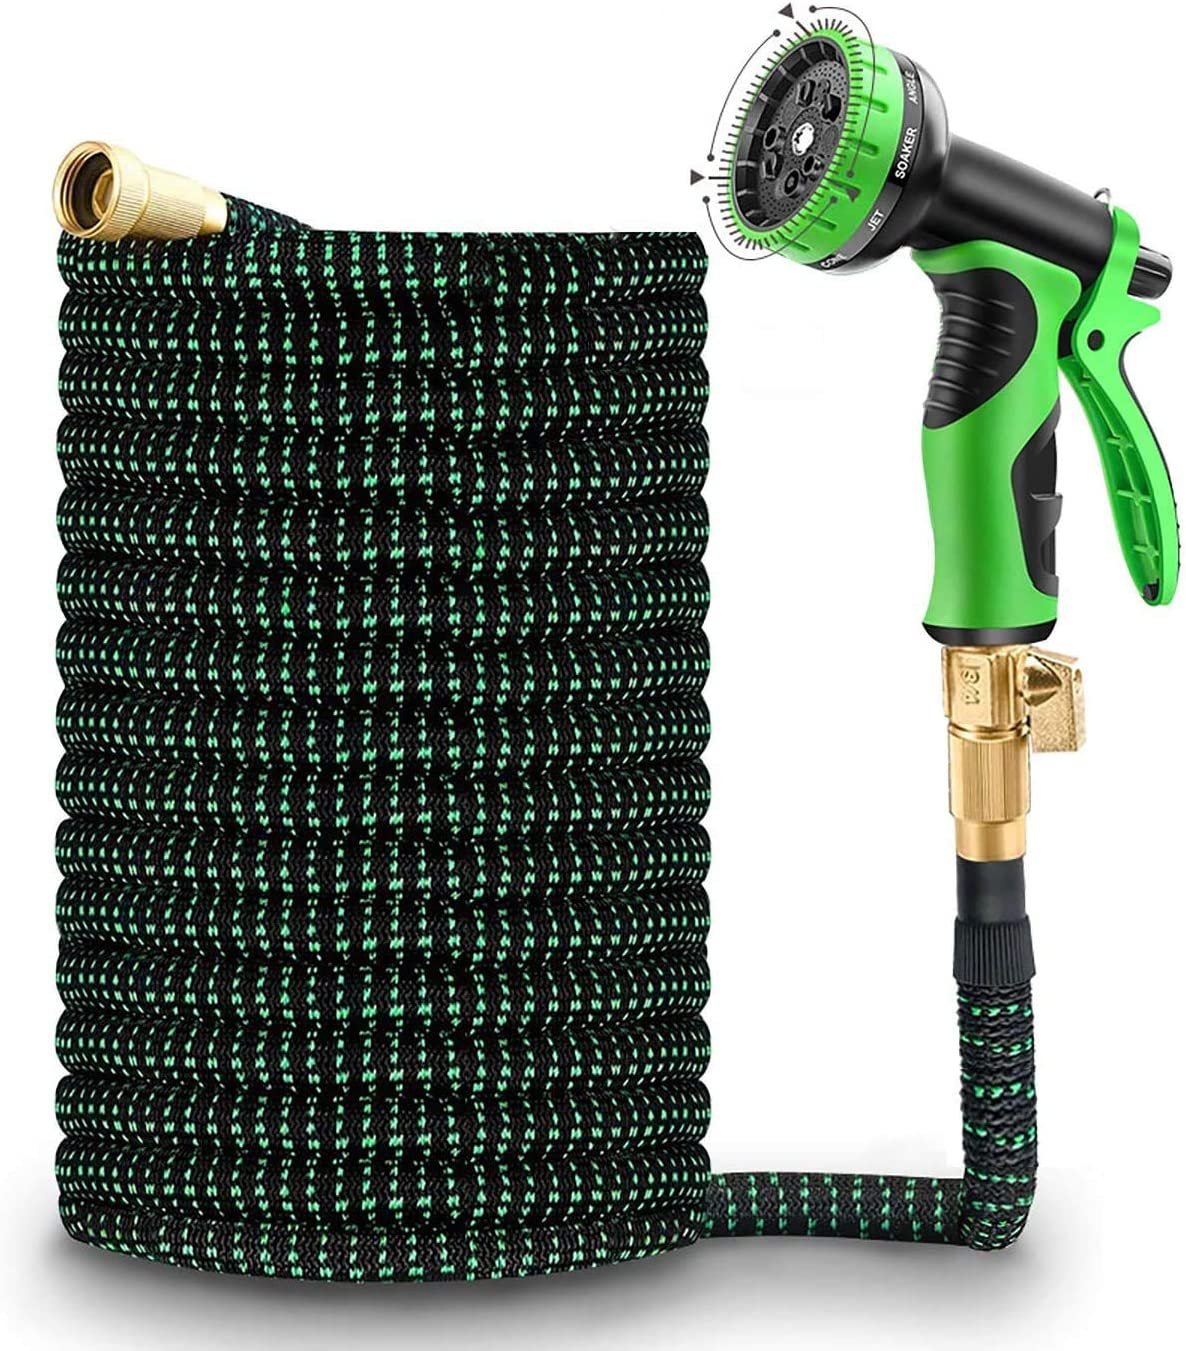 TRINIDa Expandable Garden Hose 50 ft Water Hose, 10 Patterns Leak Proof Nozzle, 3/4 Solid Brass Conn, Triple Layer Latex Inner Core Flexible Collapsible Durable Lightweight No Kink with 3750D Fabric